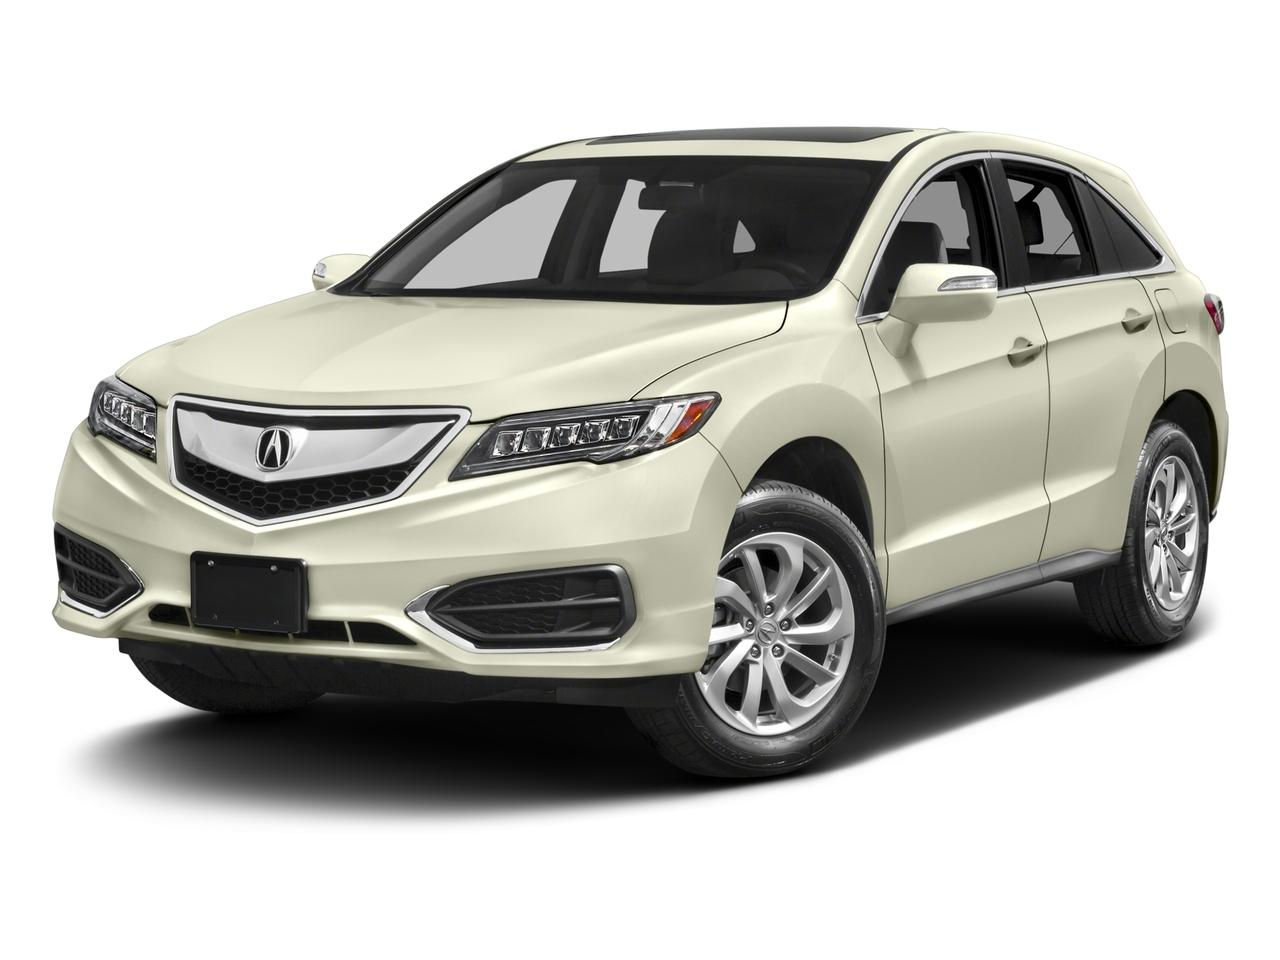 2017 Acura RDX Vehicle Photo in Oklahoma City, OK 73131